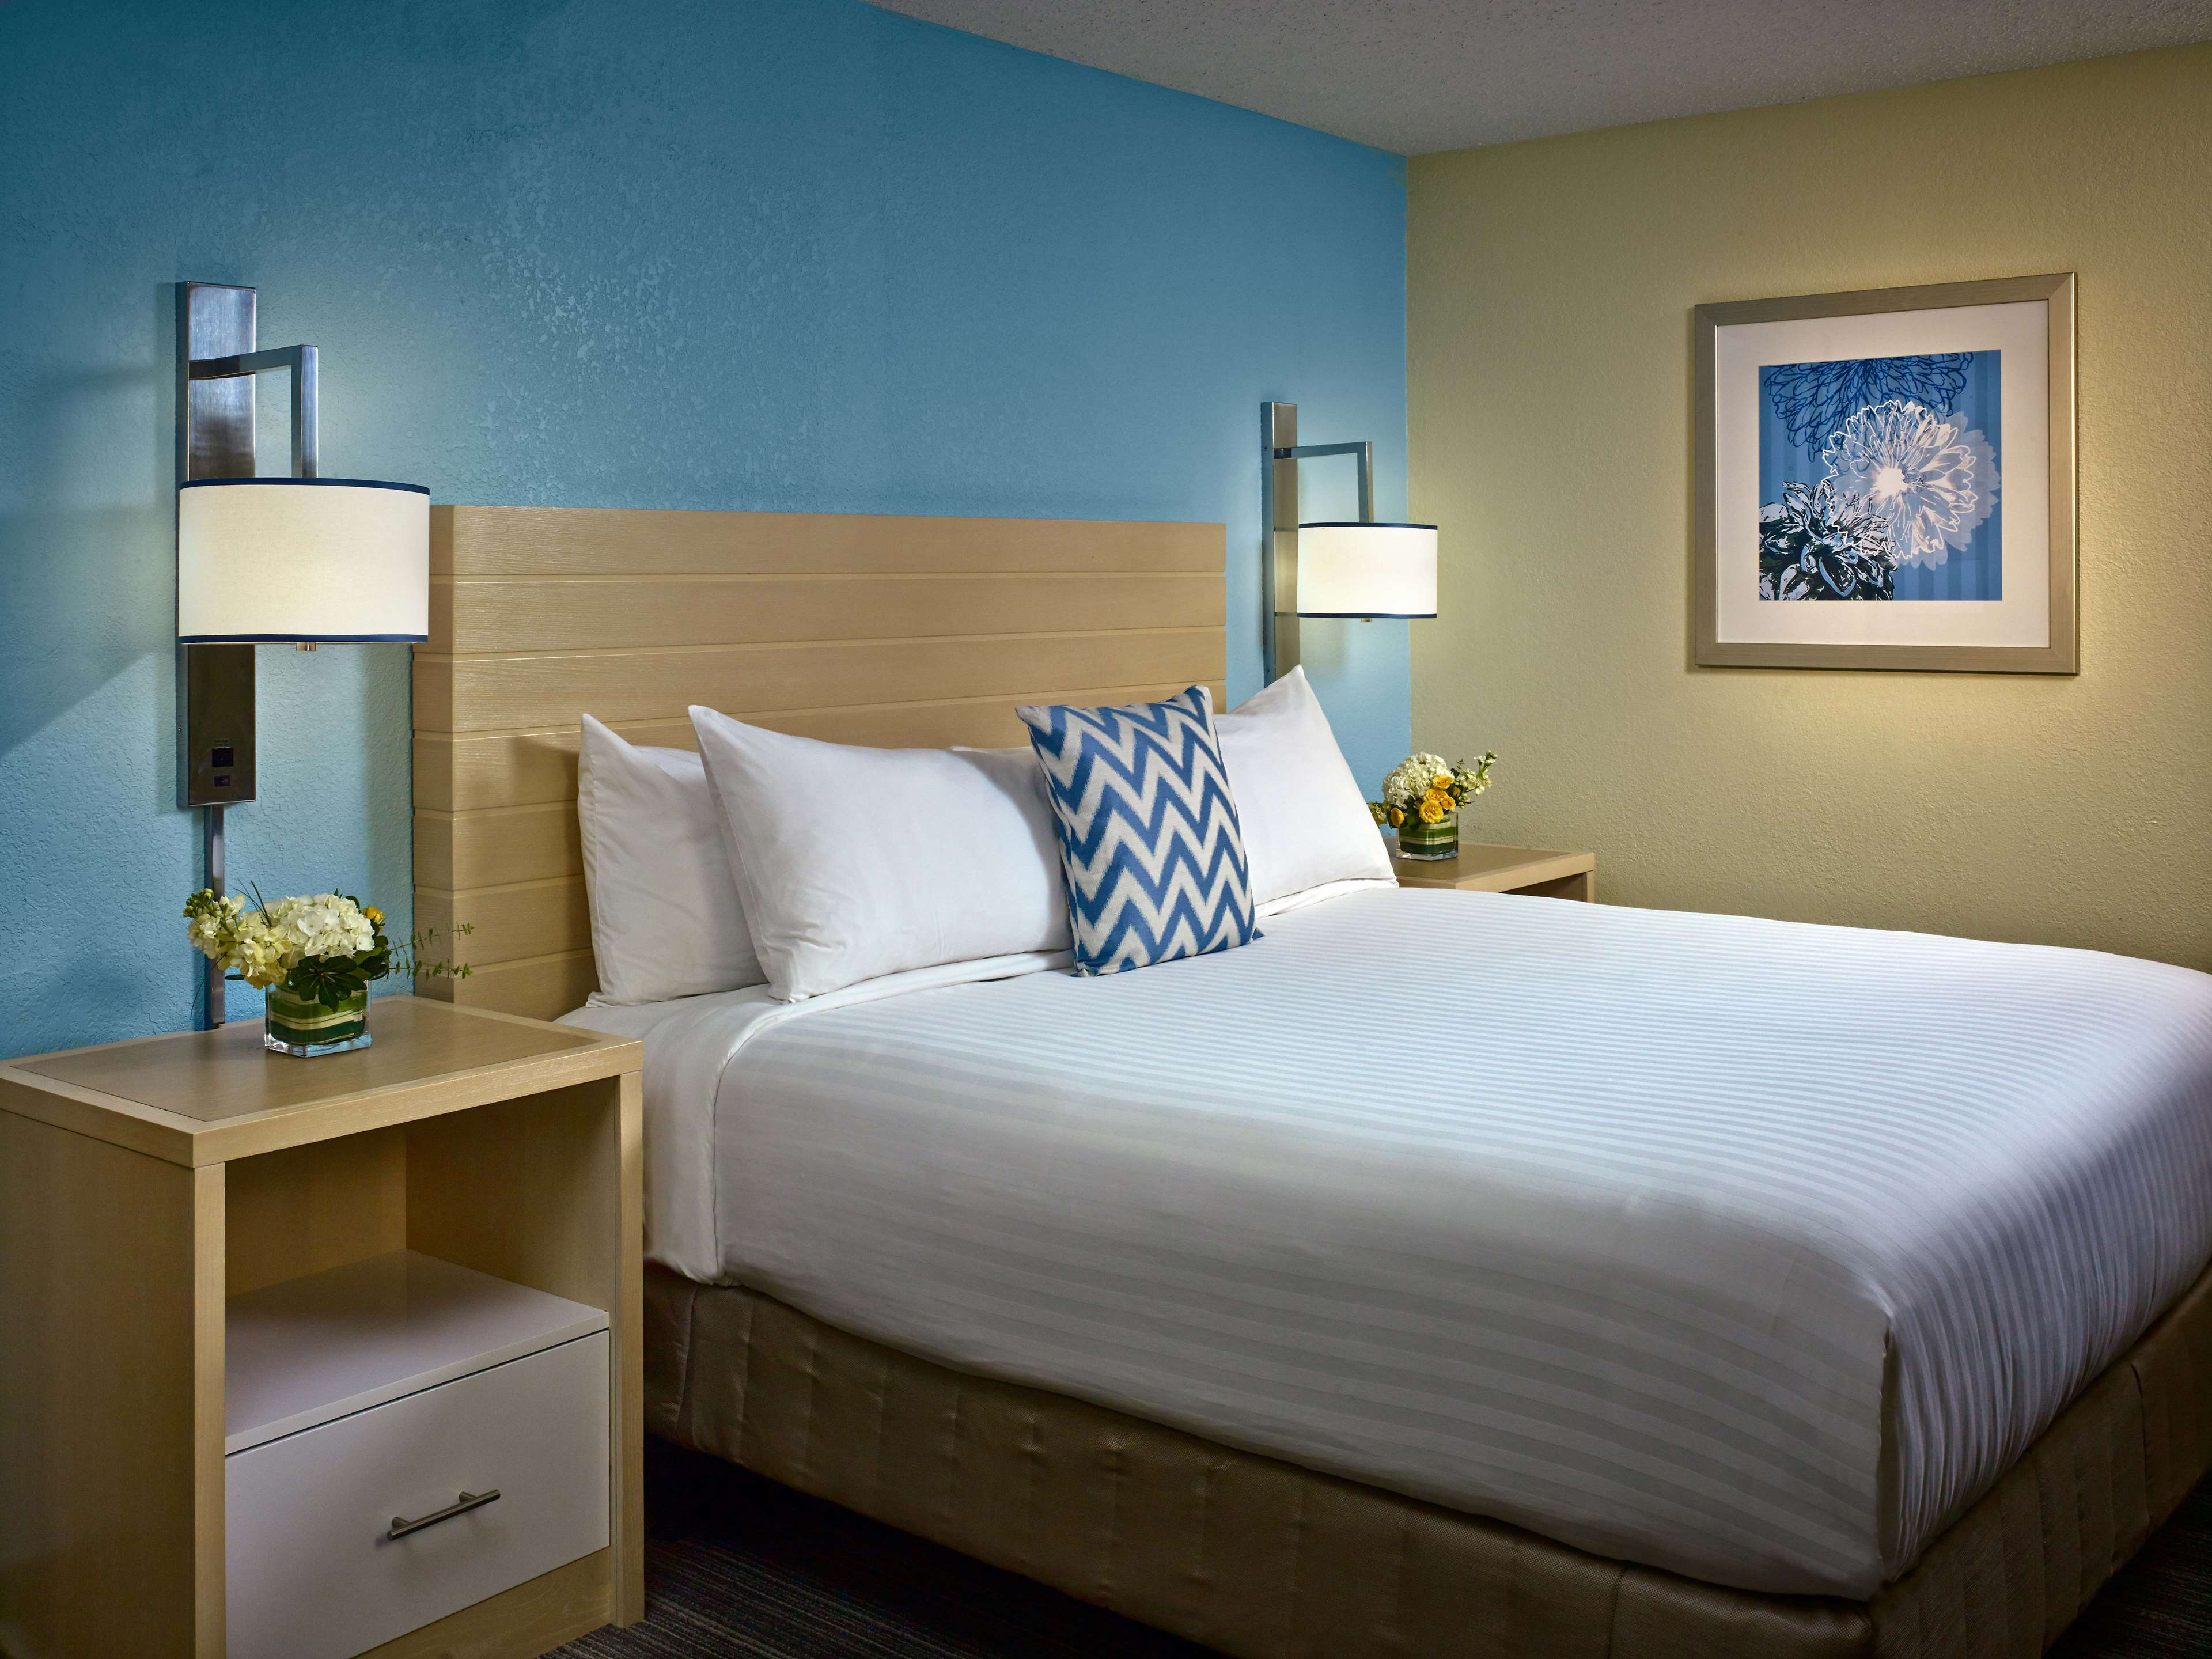 Stay 2 nights and get 15% off